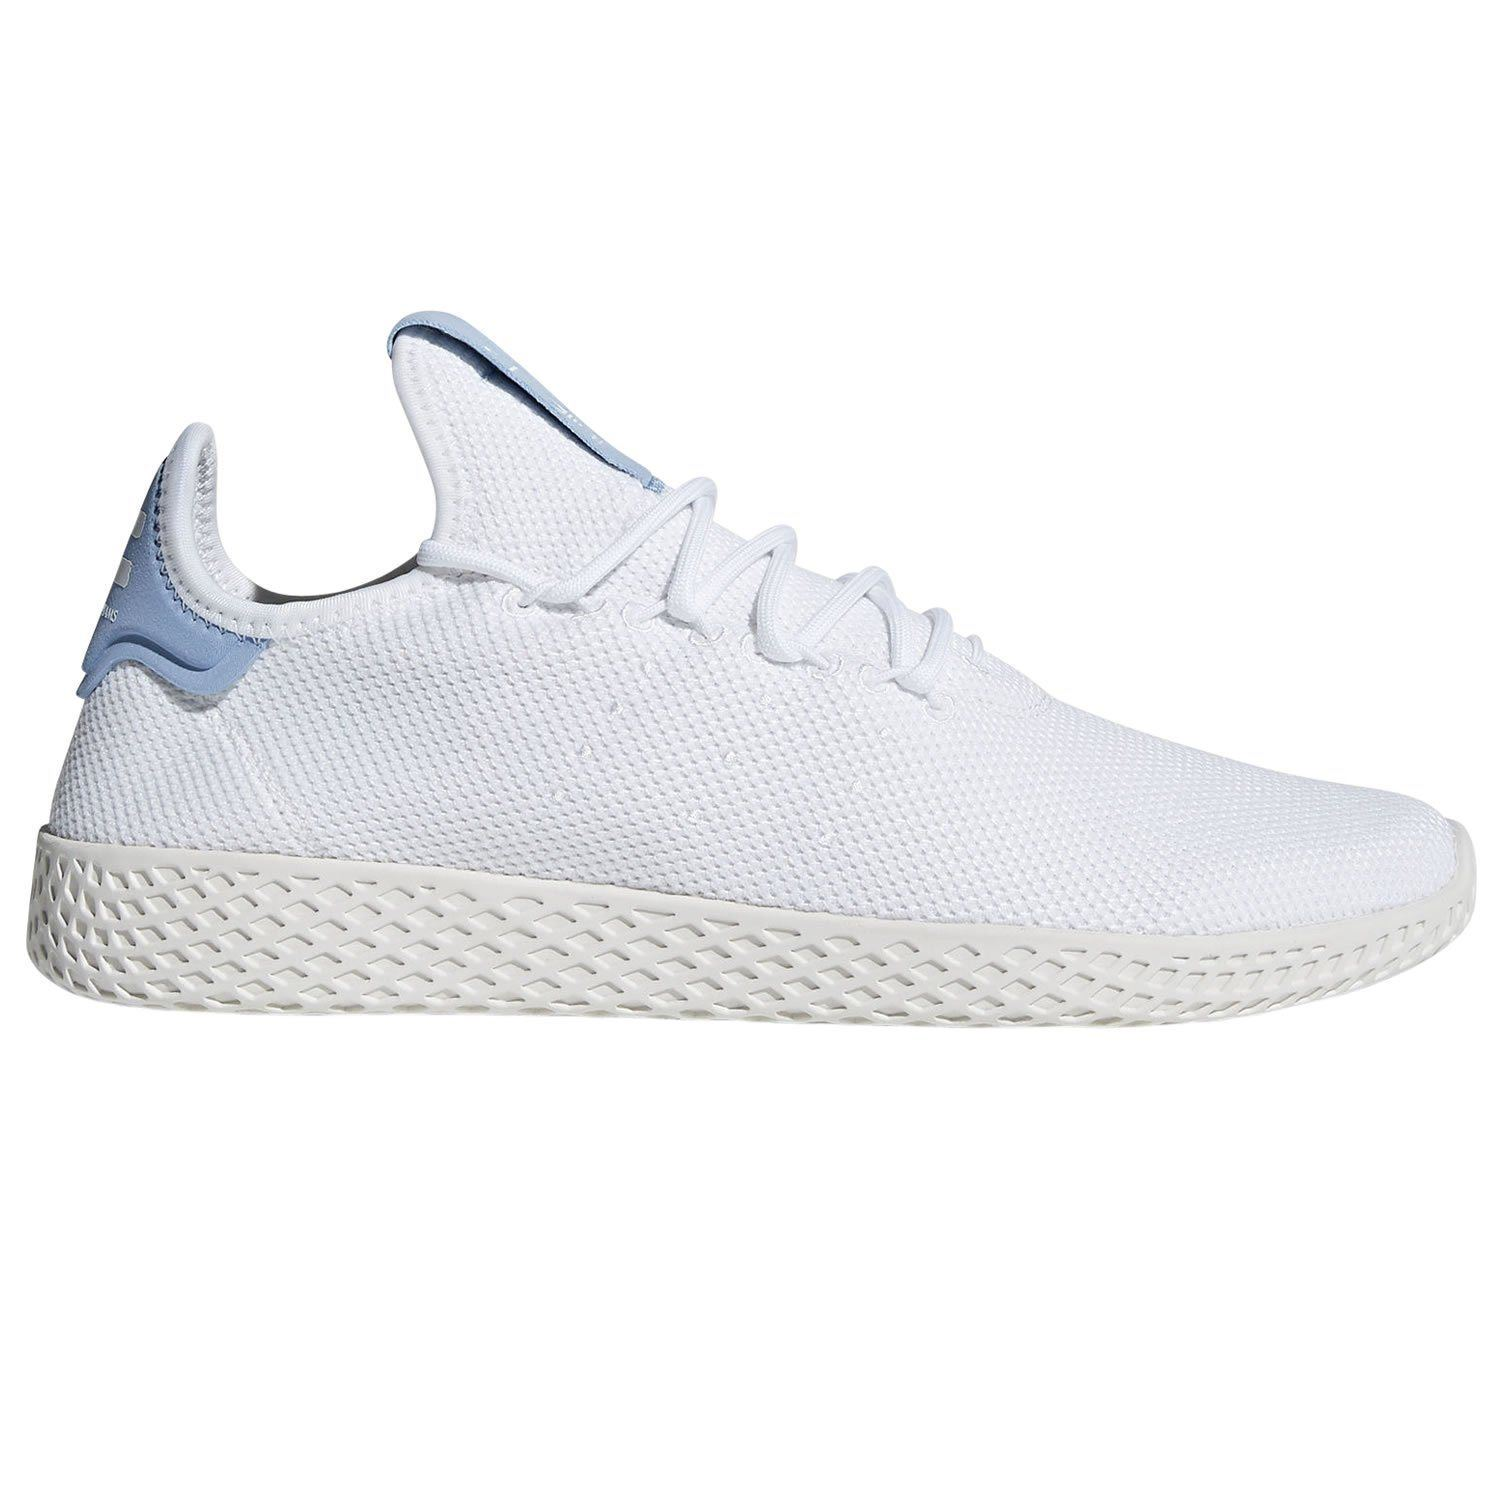 pretty nice 3df6c ea874 Adidas PHARRELL WILLIAMS HU baskets blanc bleu baskets formateurs KICKS